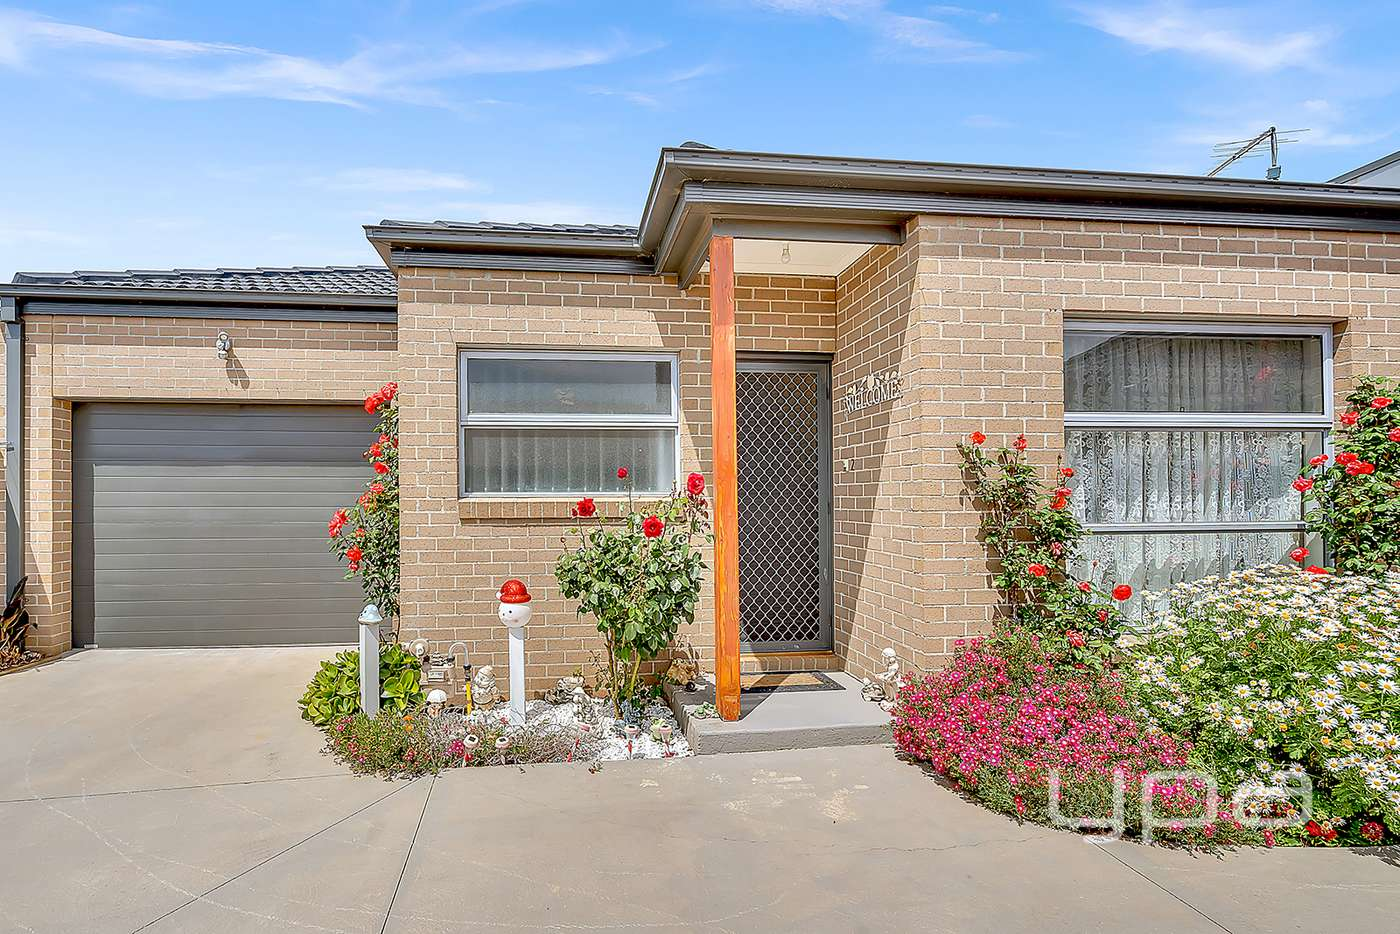 Main view of Homely unit listing, 2/33 Keeper Street, Sunbury, VIC 3429